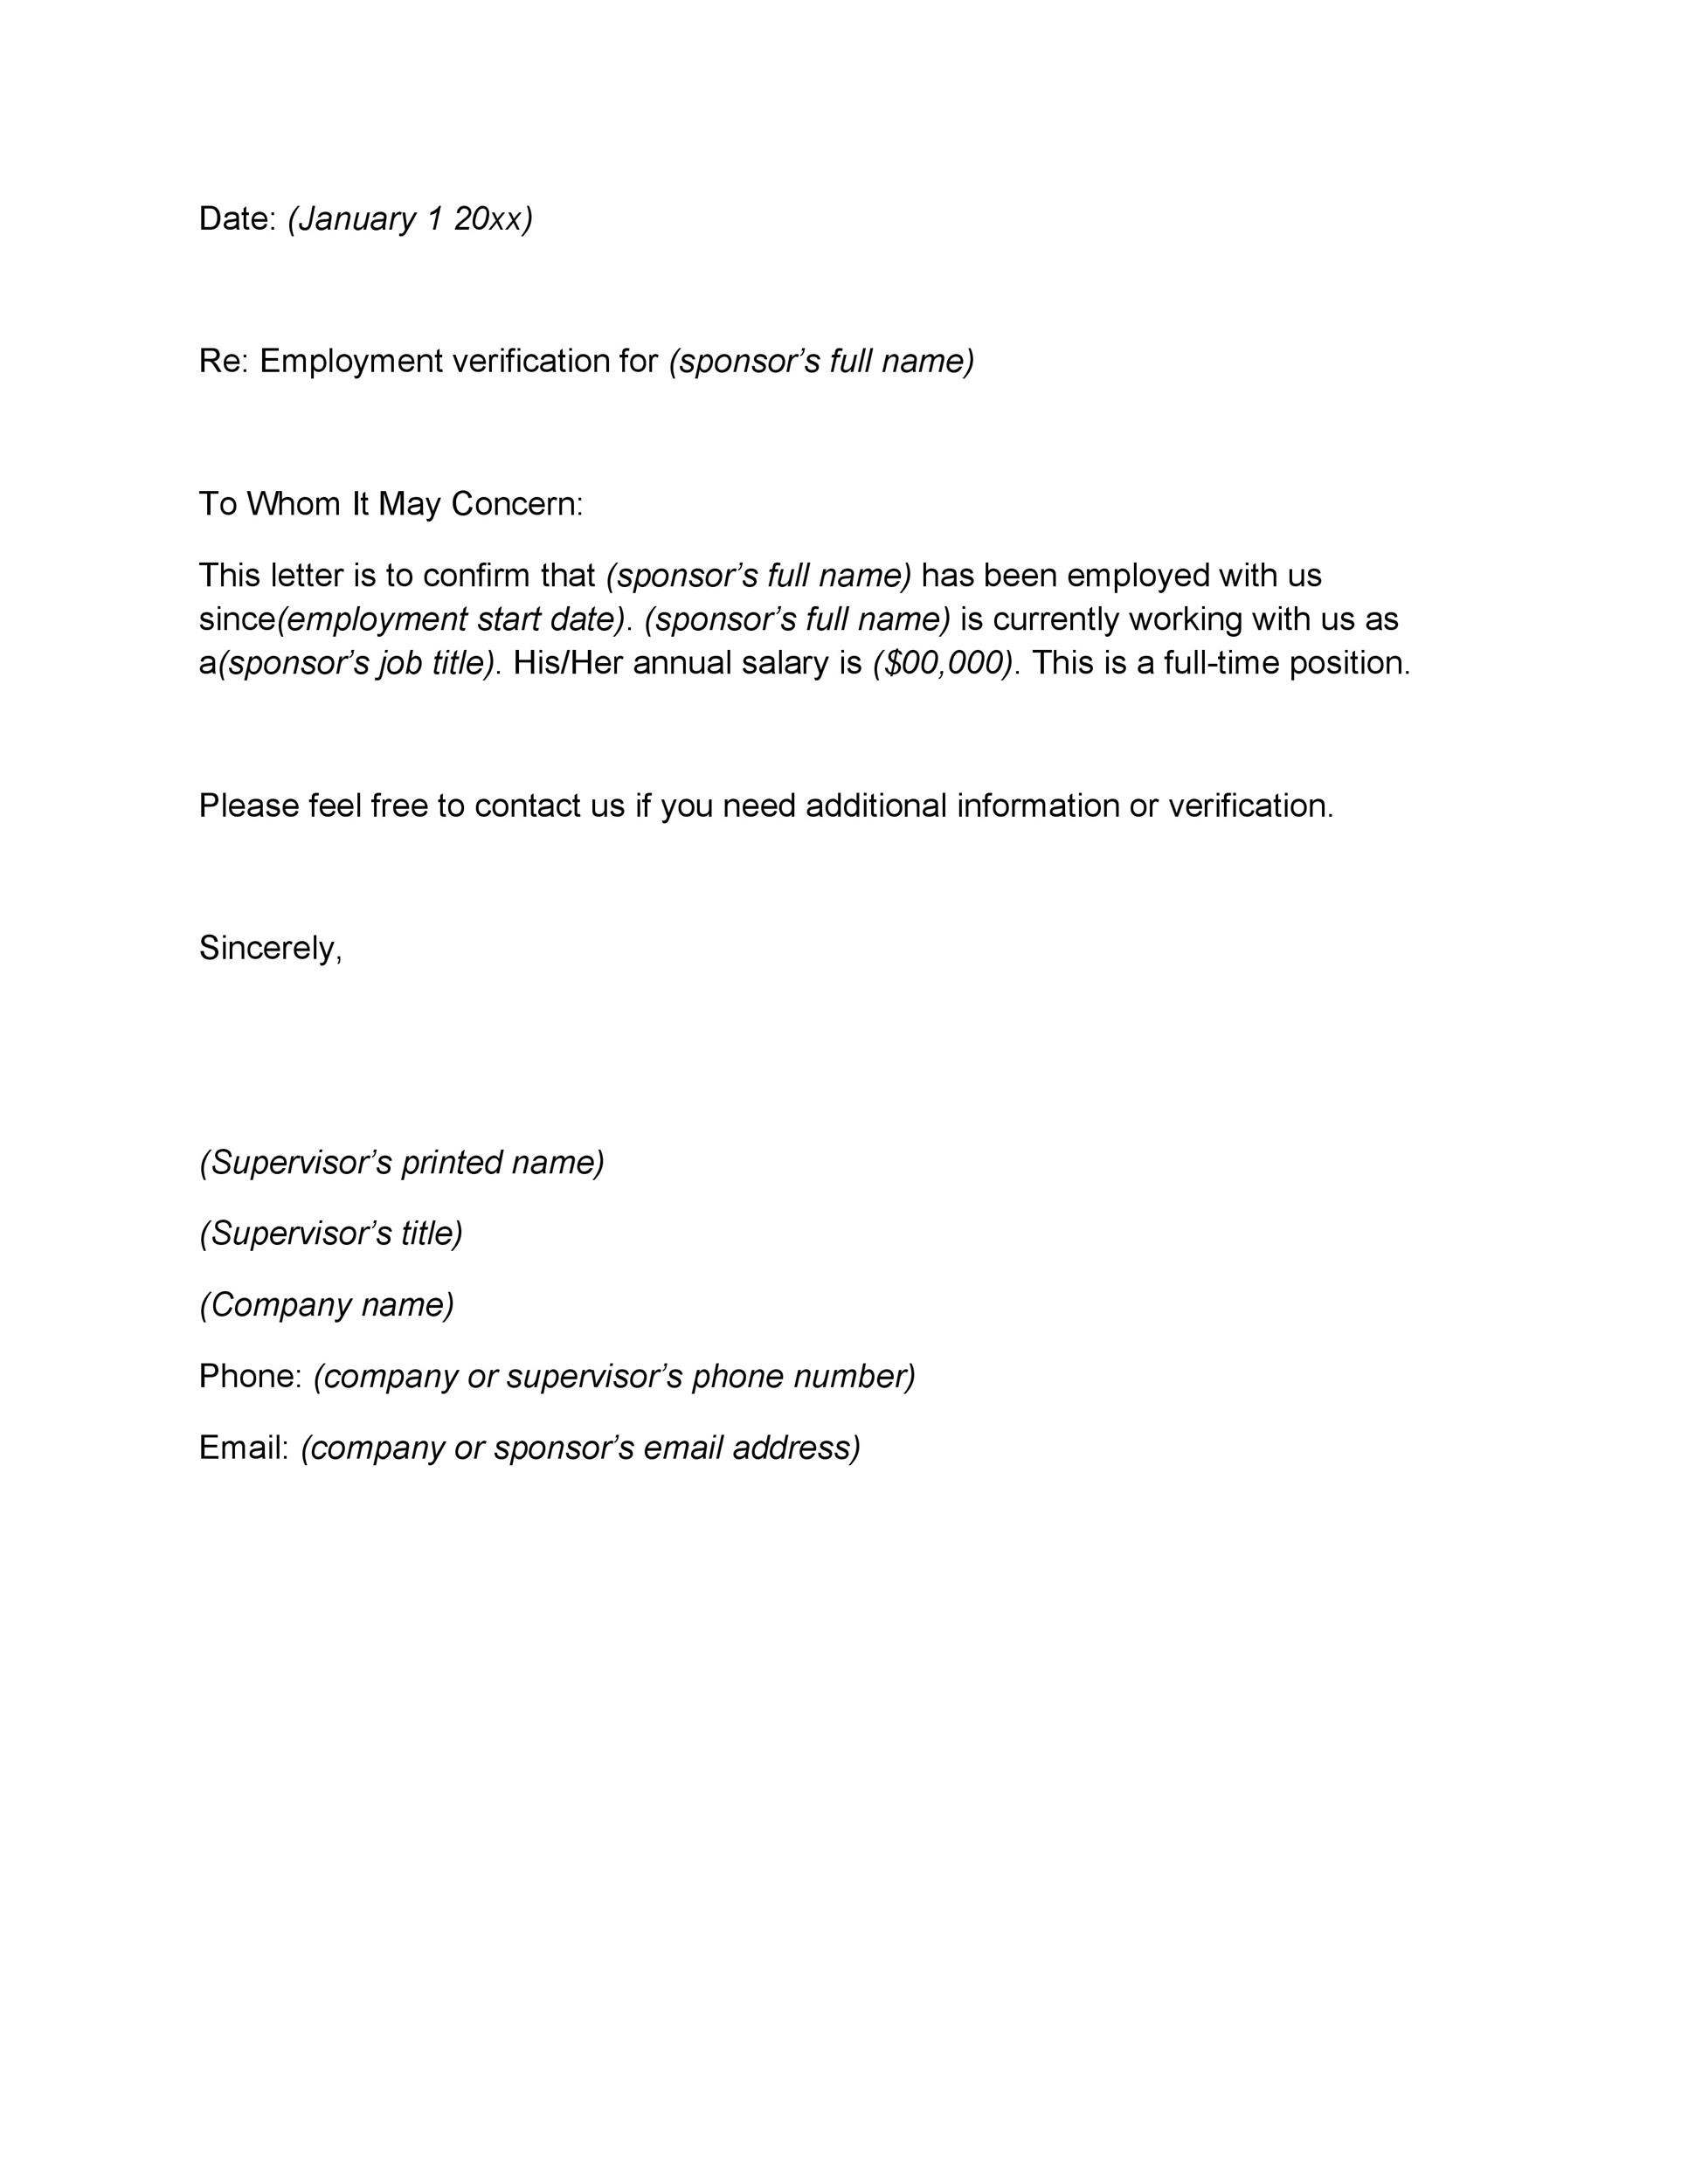 40 Proof of Employment Letters, Verification Forms  Samples - job letter